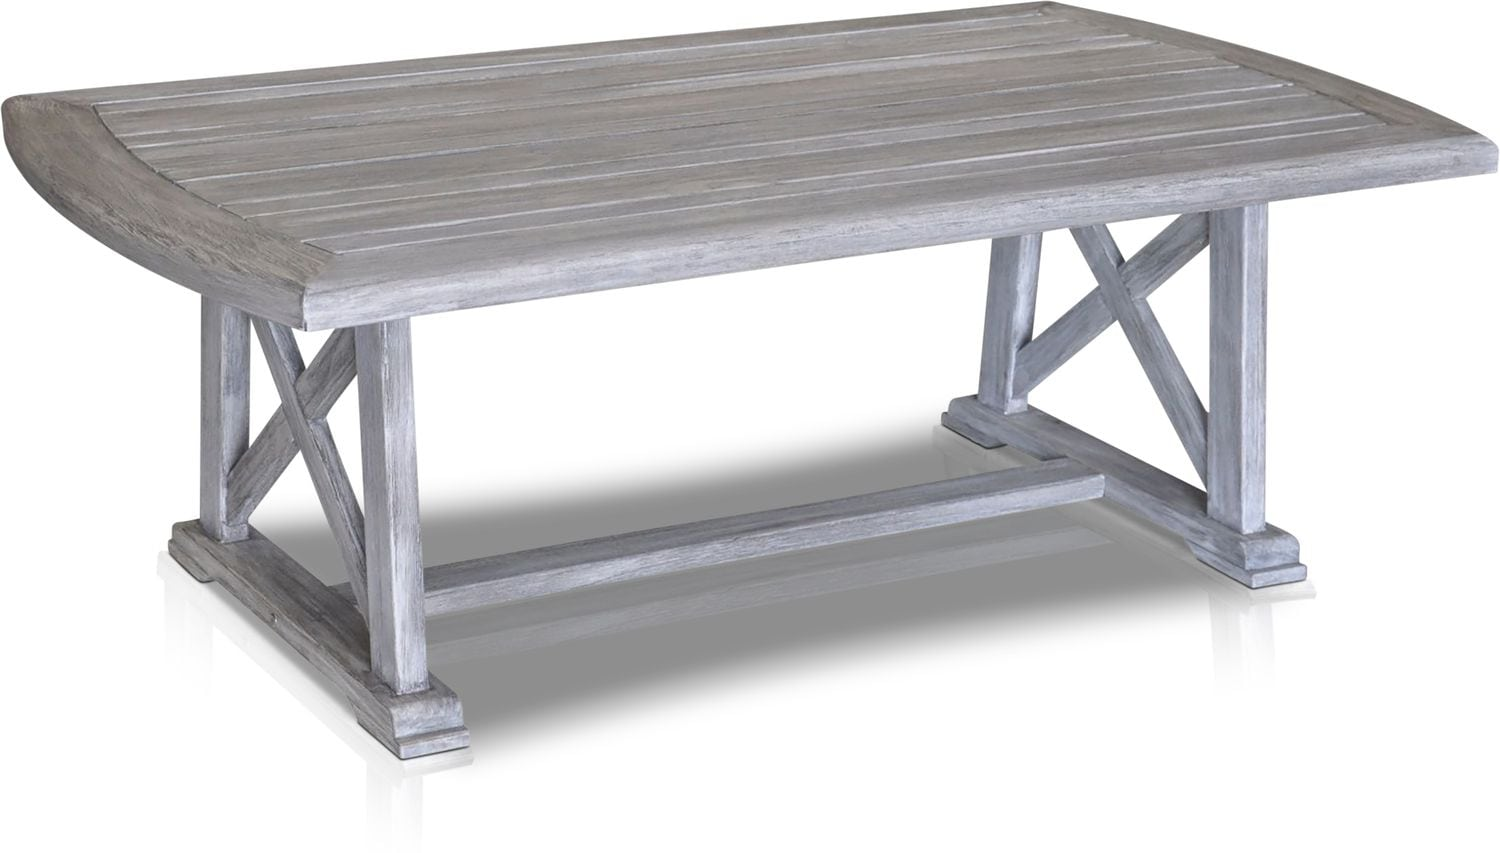 Outdoor Furniture - Marshall Outdoor Rectangular Dining Table